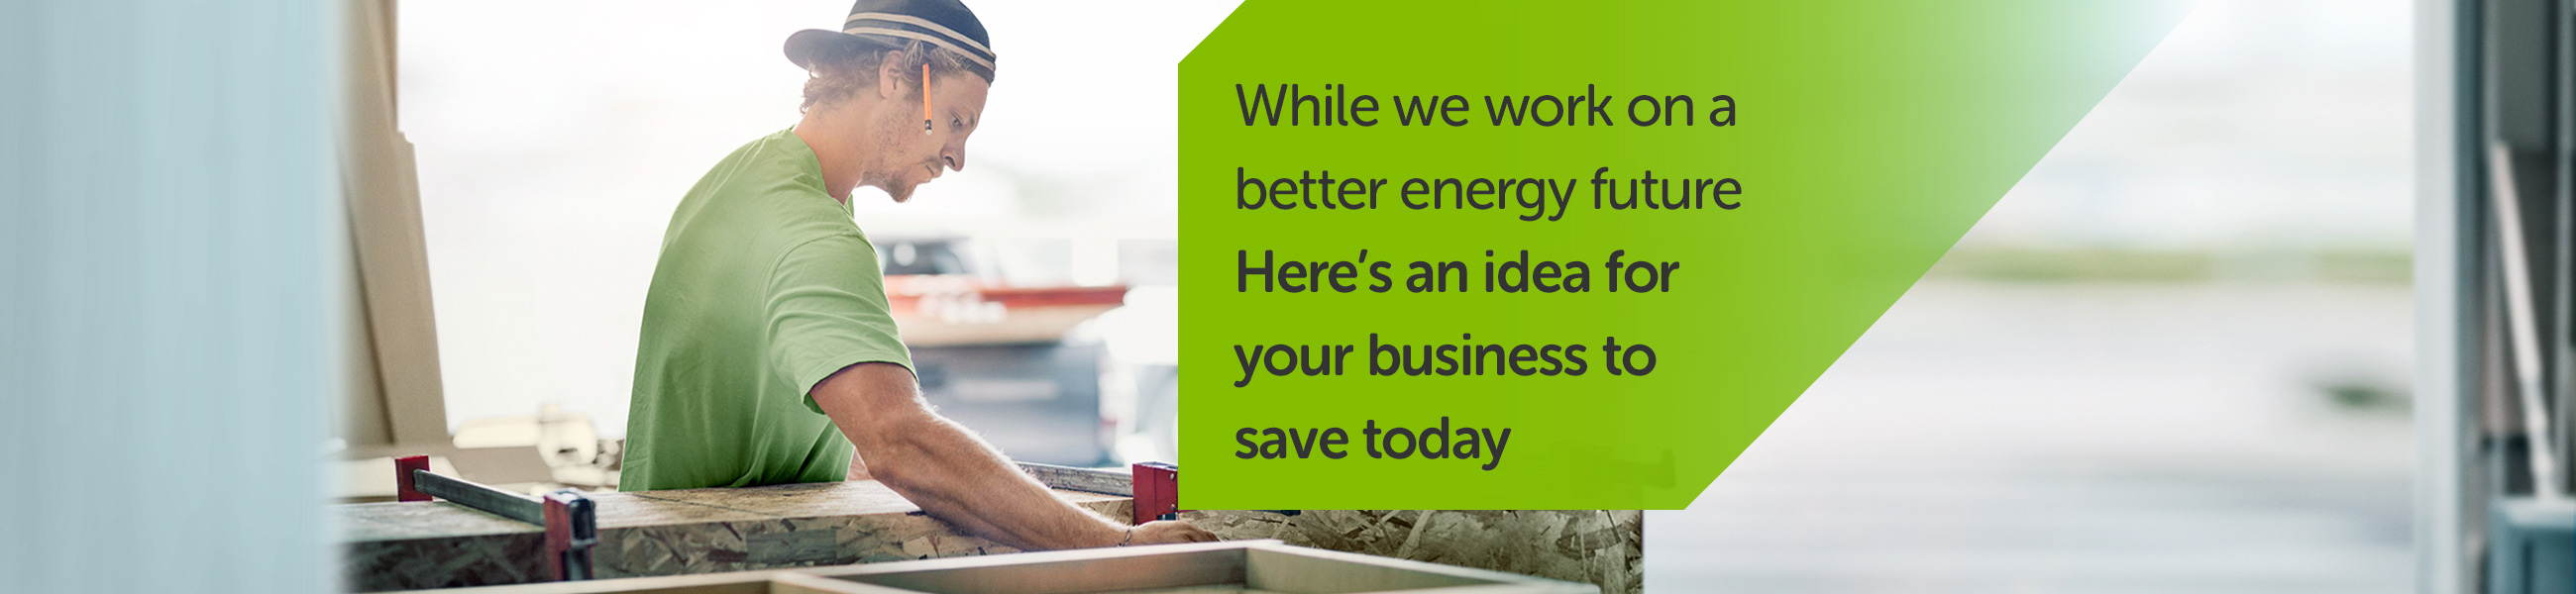 While we work on a better energy future - Here's an idea for your business to save today